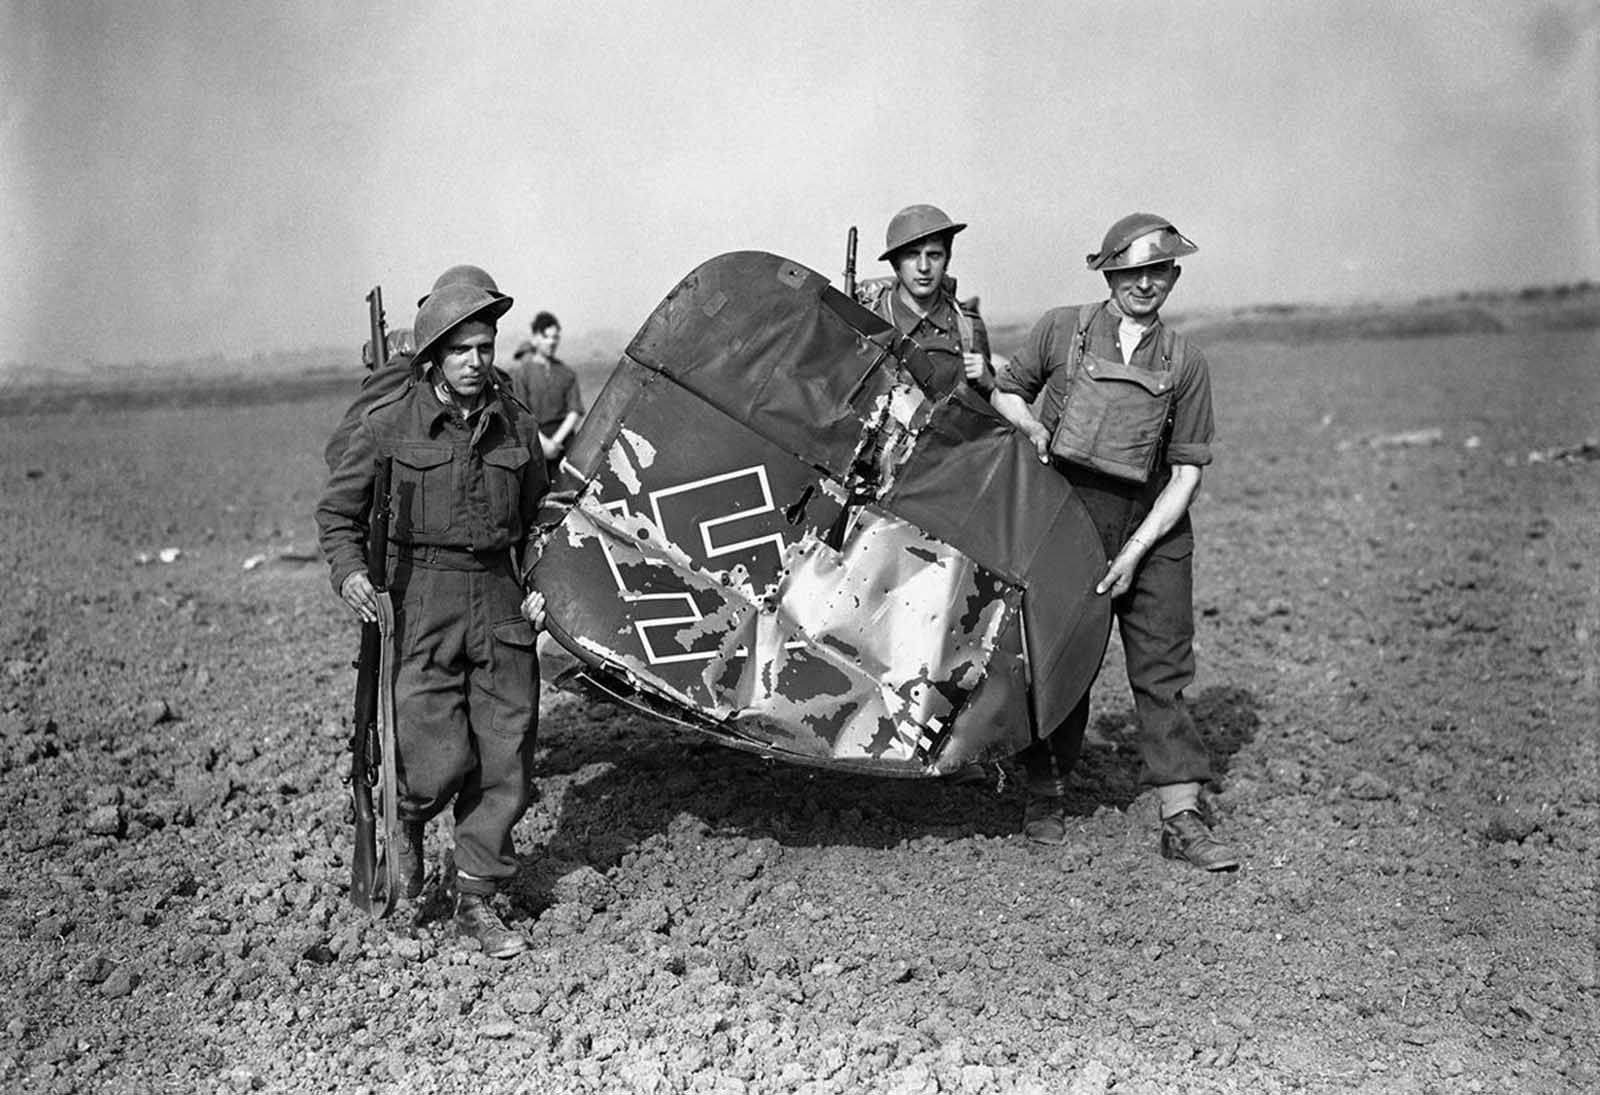 Soldiers carrying off the tail of a Messerschmitt 110, which was shot down by fighter planes in Essex, England, on September 3, 1940.